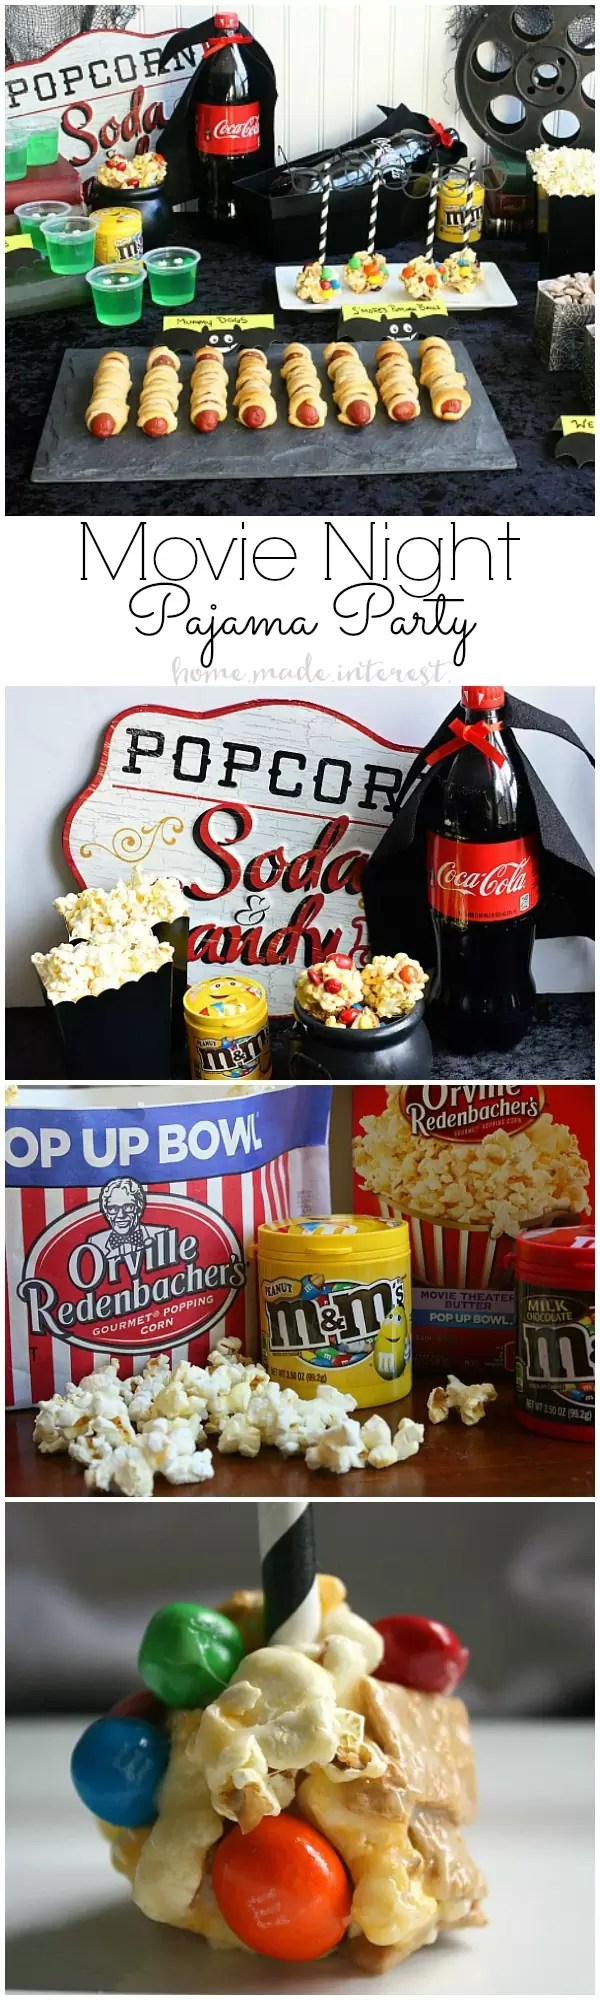 Pajama Party Movie Night - Put on your favorite PJs and grab some snacks, this Pajama party Movie night party with Hotel Transylvania 2 is the perfect way to entertain the kids when the weather gets cold and they can't go out and play. Sticky, salty and sweet S'Mores Popcorn balls are made with M&M's and movie theater microwave popcorn for the perfect movie night treat.